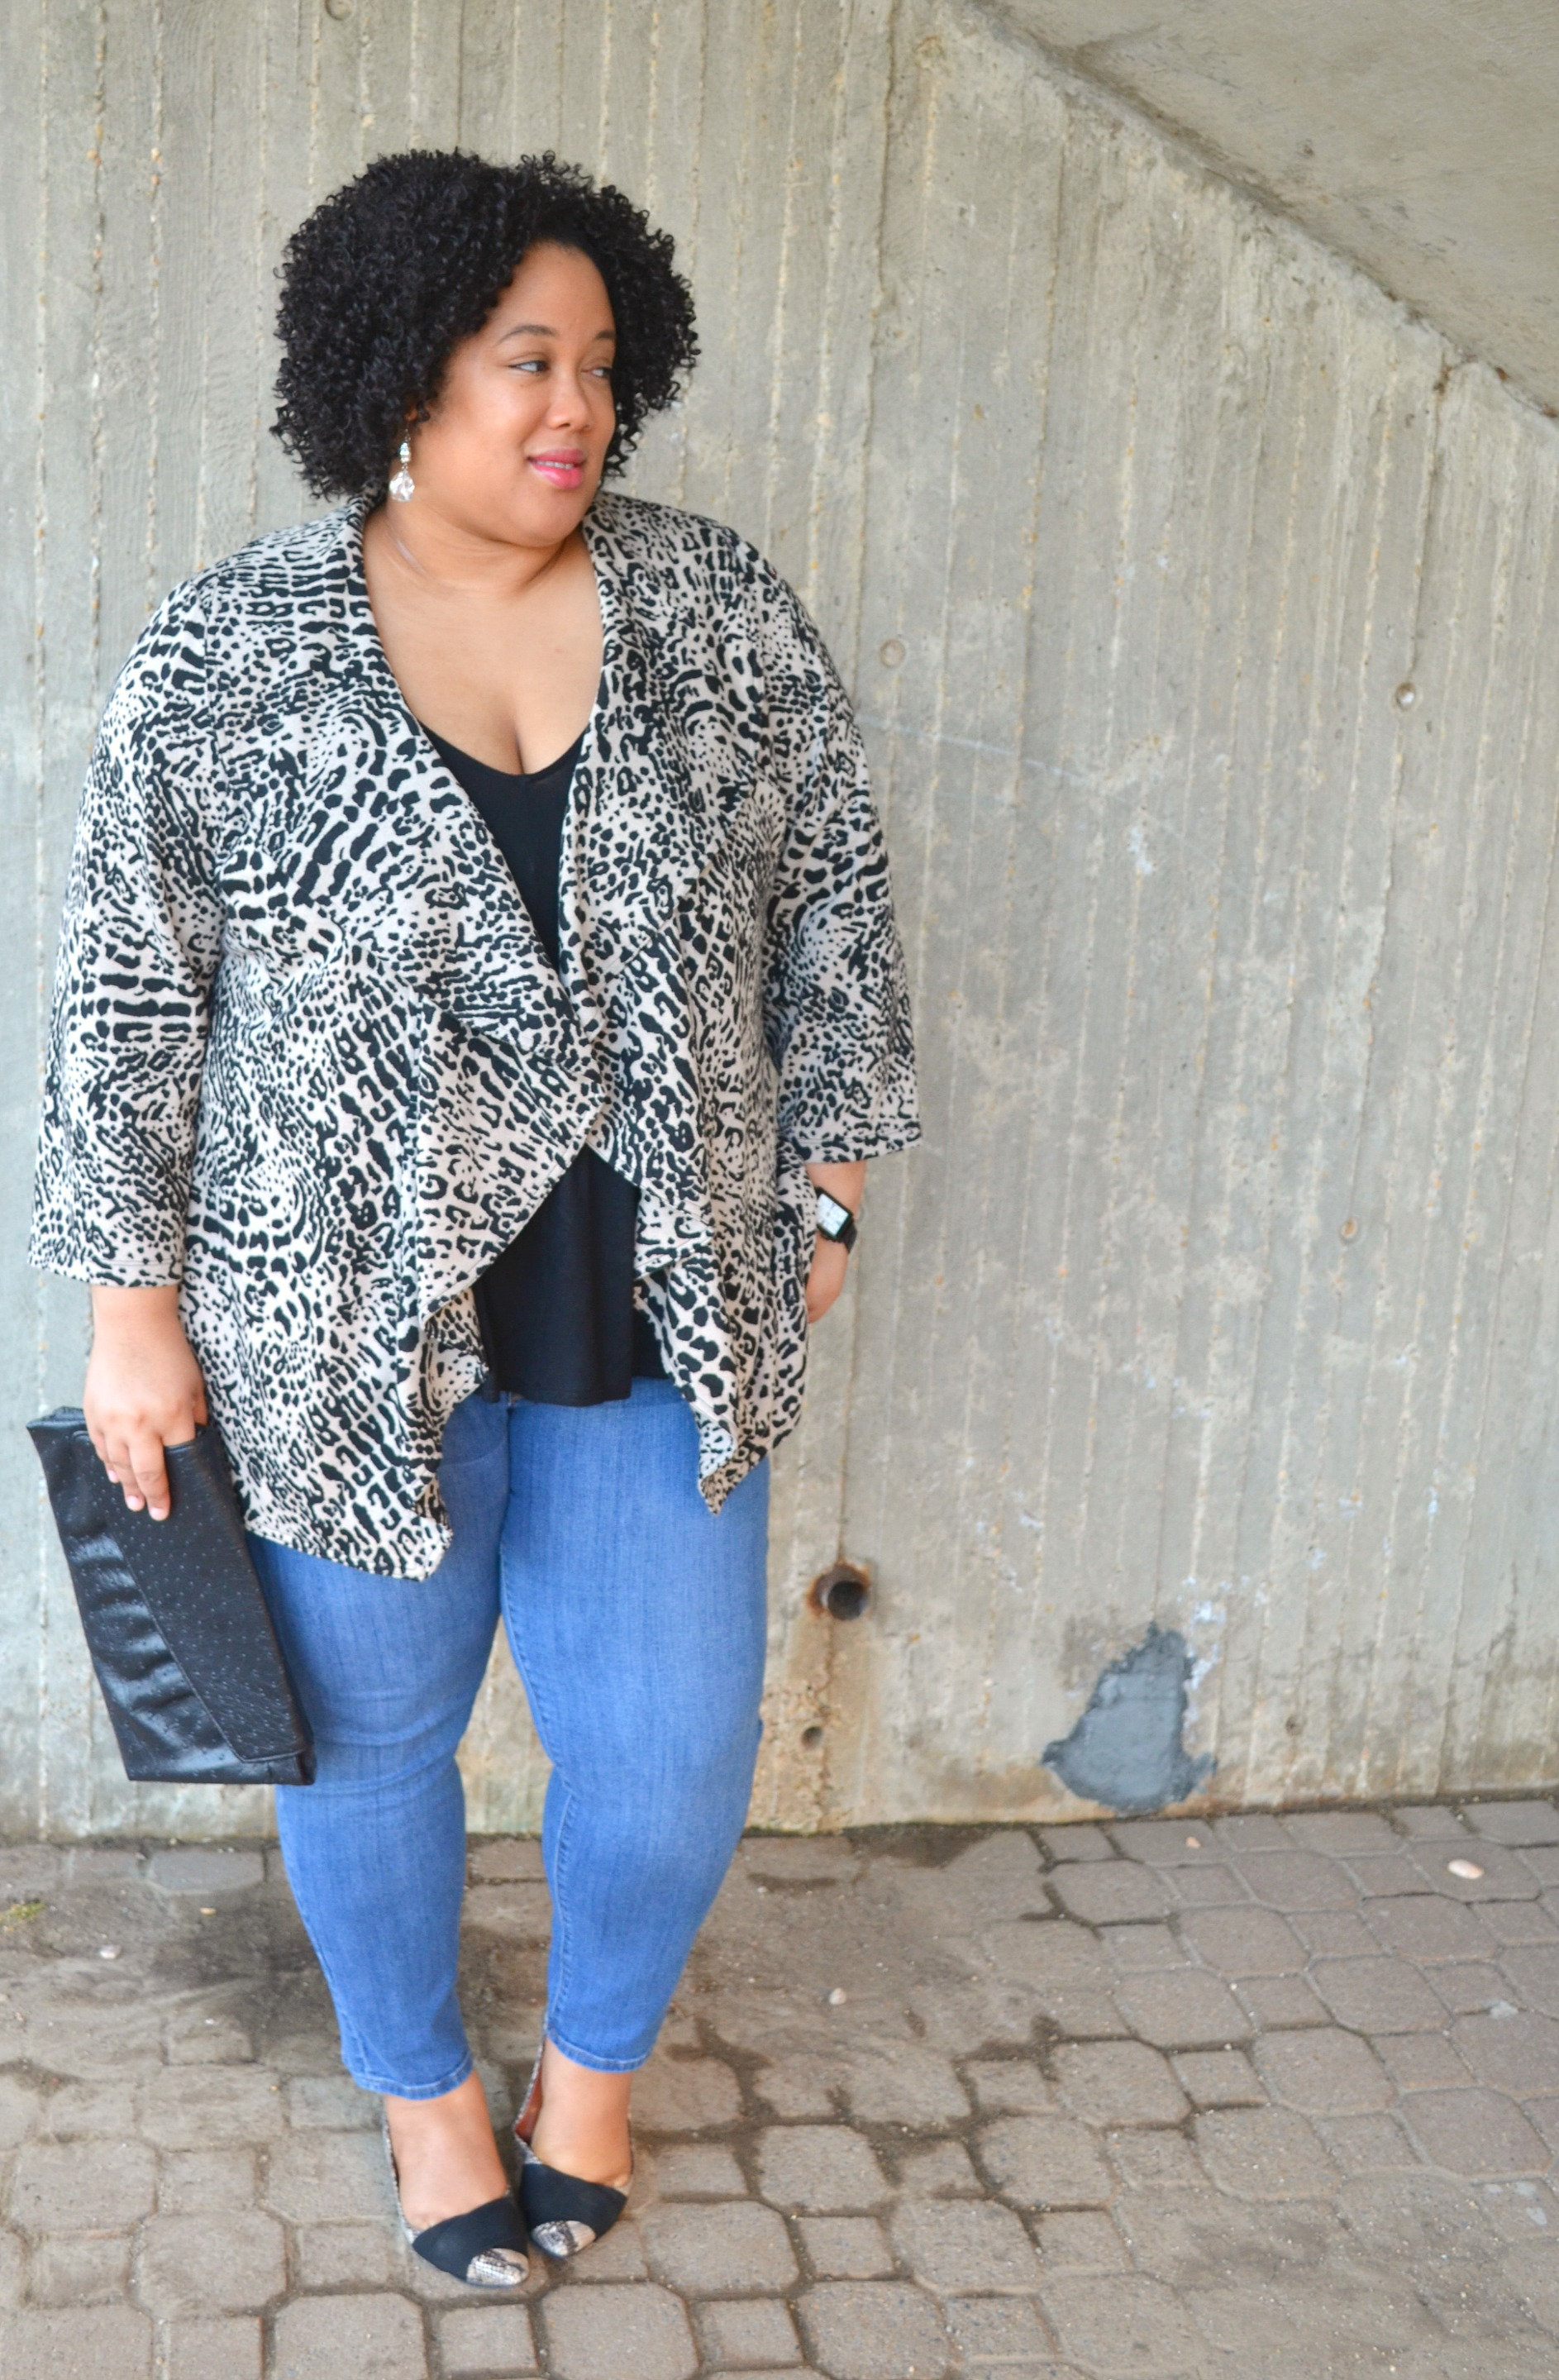 Denim and Animal Print - OOTD